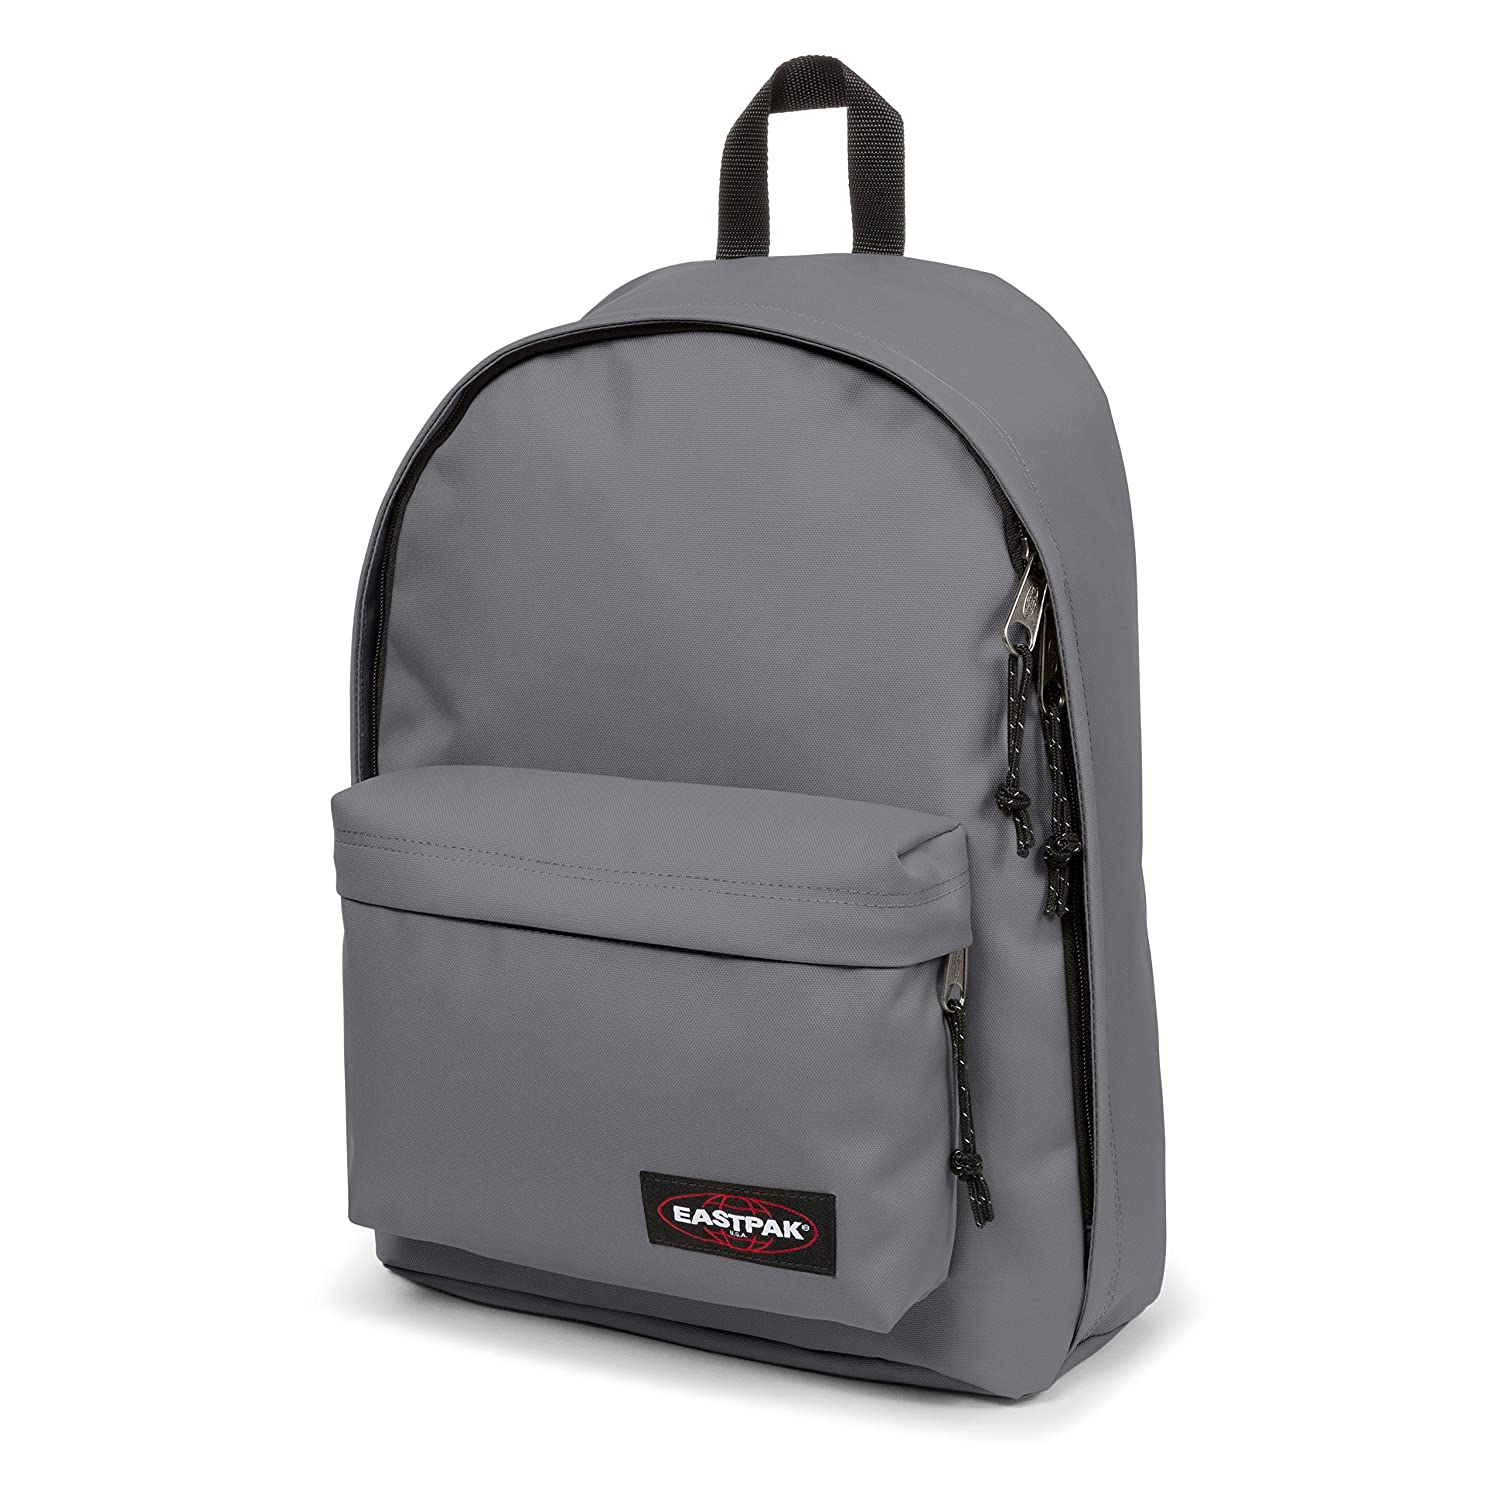 Eastpak Out Of Office Mochila, 27 litros, Gris (Woven Grey): Amazon.es: Equipaje